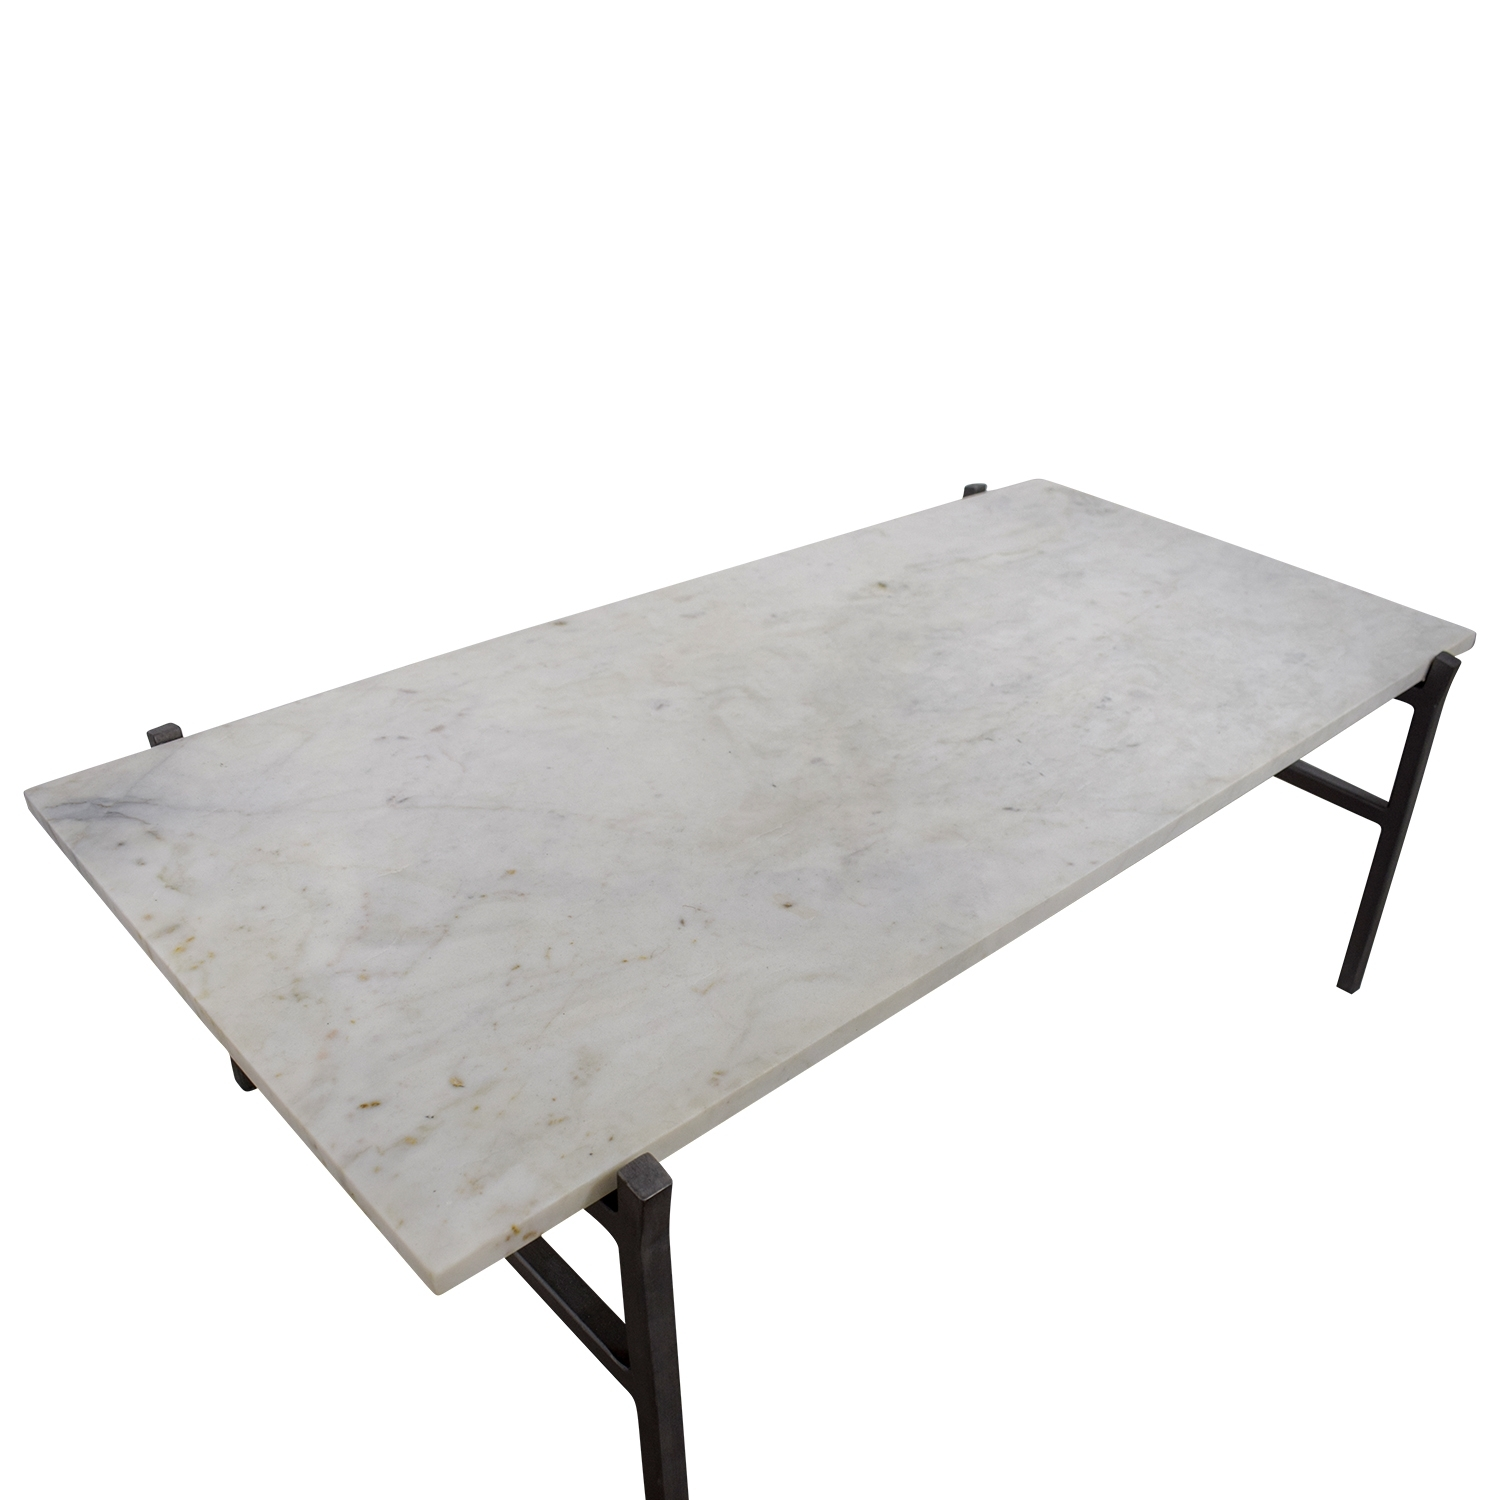 24% Off – Cb2 Cb2 Slab Small Marble Coffee Table With Antiqued Within Slab Small Marble Coffee Tables With Antiqued Silver Base (Gallery 5 of 30)